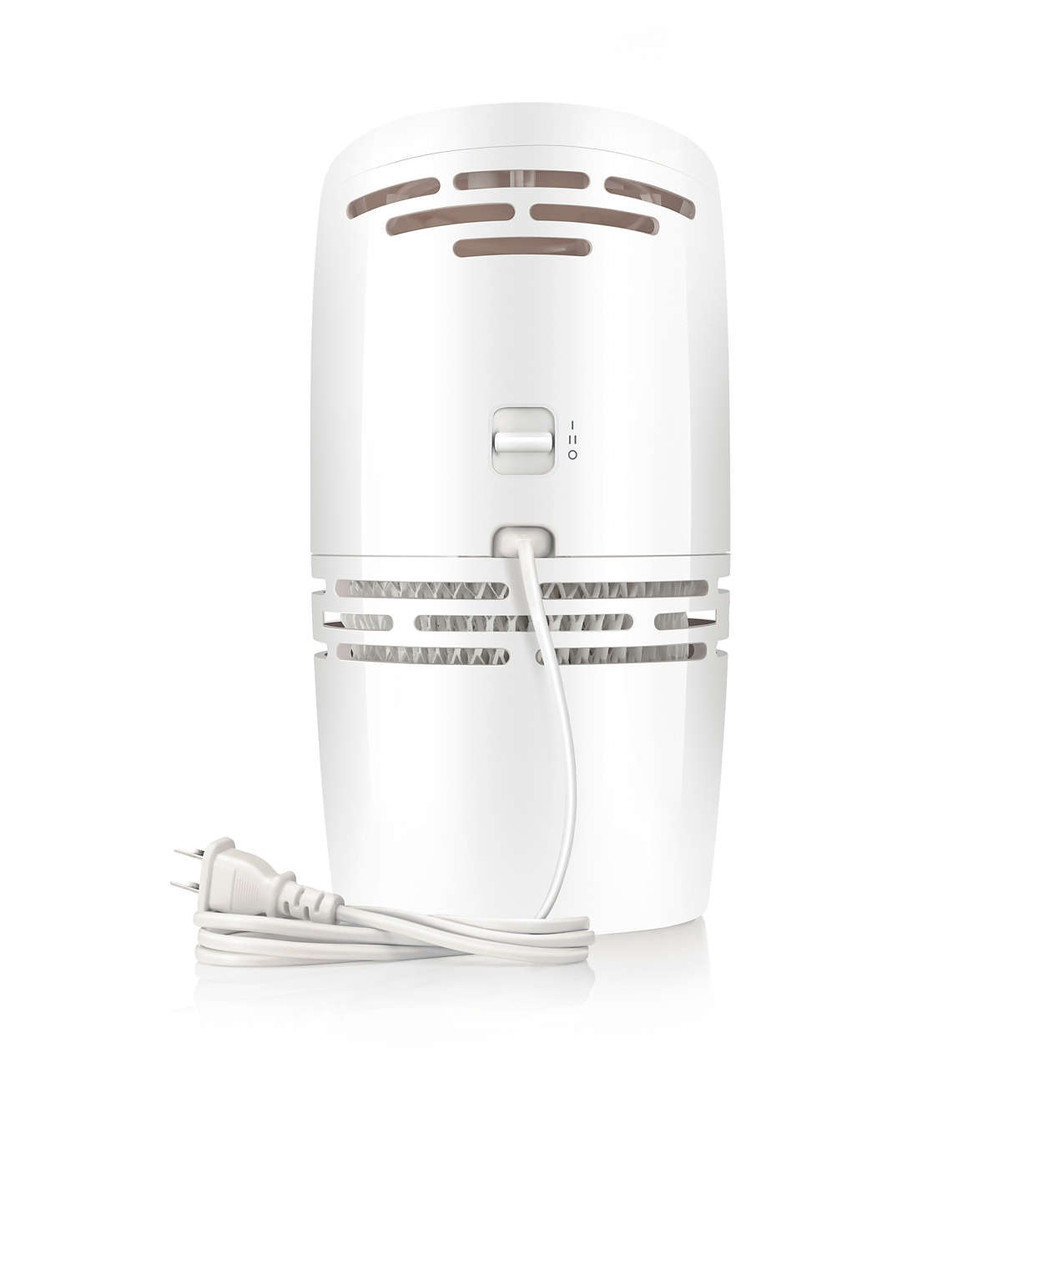 Philips HU4706/70 Series 1000 Humidifier Desktop Air Purifier With NanoCloud Tech